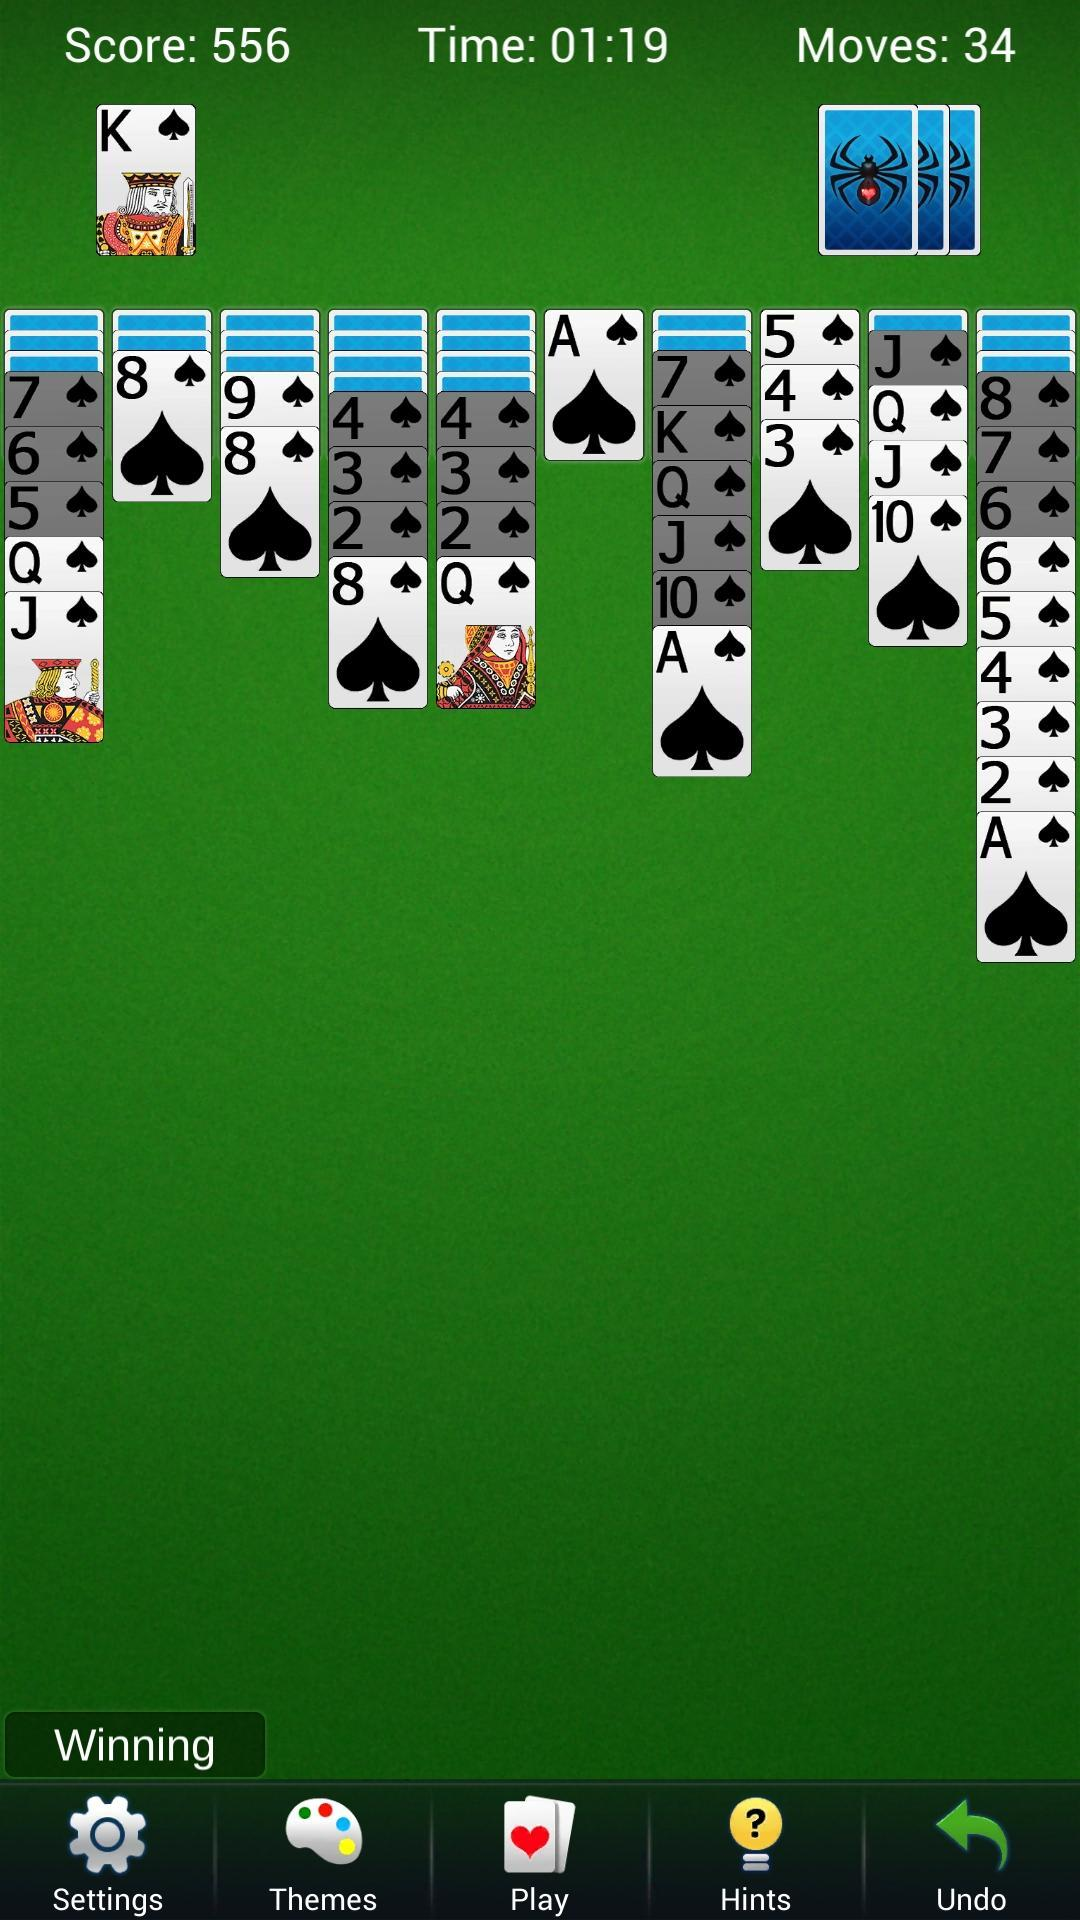 Spider Solitaire - Best Classic Card Games 1.8.0.20210225 Screenshot 11